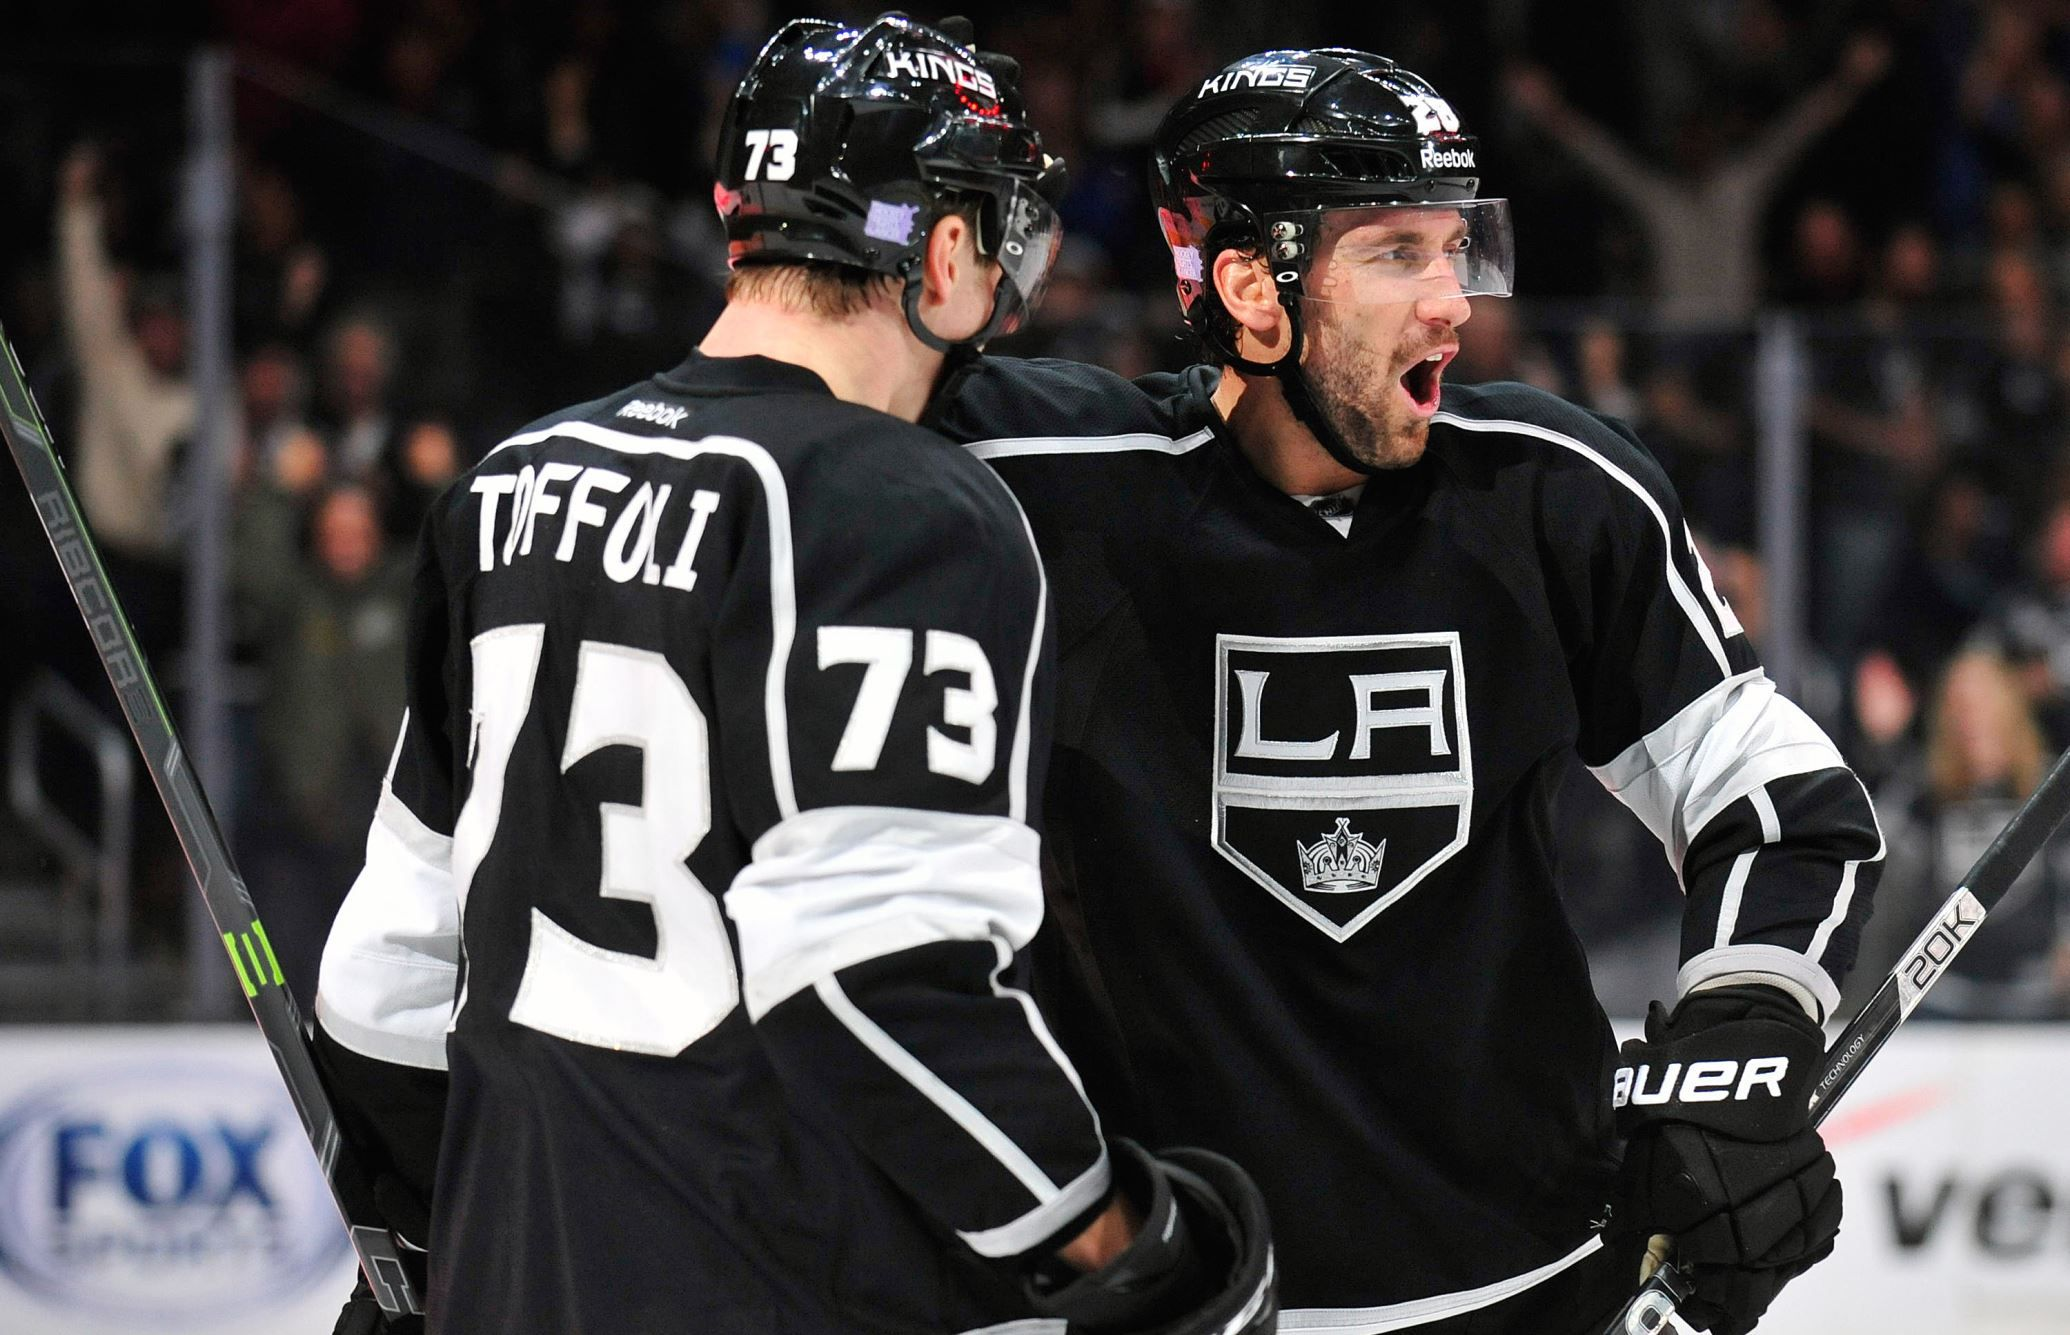 Los Angeles Kings center Tyler Toffoli (73) celebrates with center Jarret Stoll (28) his goal scored... - Gary A. Vasquez/USA TODAY Sports